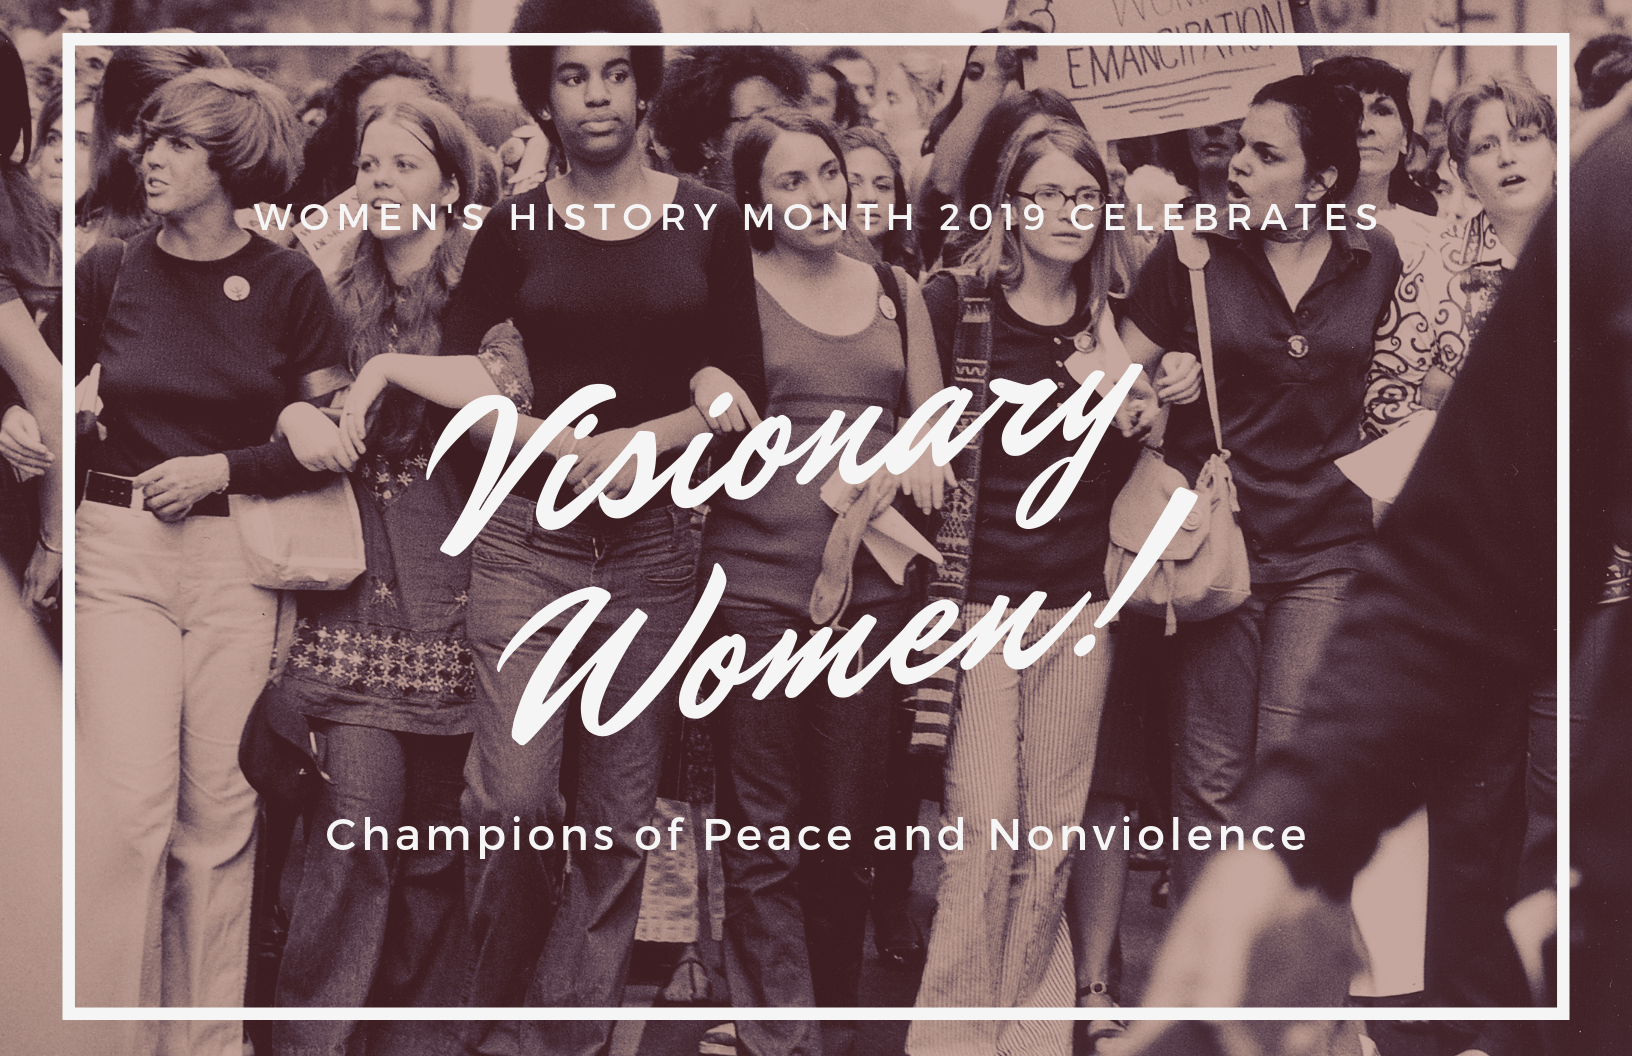 Women's History Month 2019 celebrates Visionary Wo